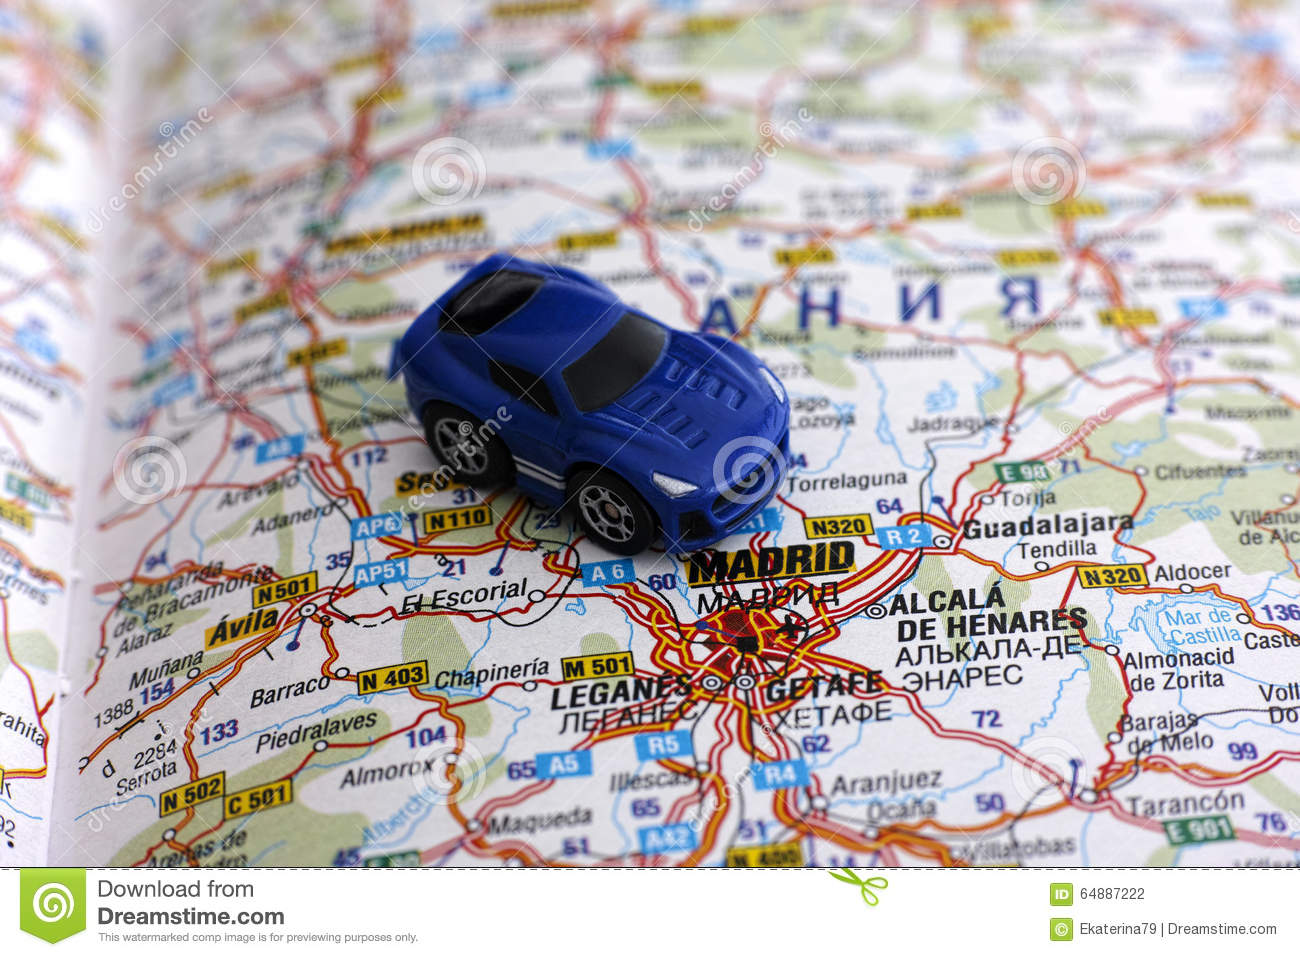 Road Map Of Spain.Road Map Of Spain With Car Stock Photo Image Of Cartography 64887222